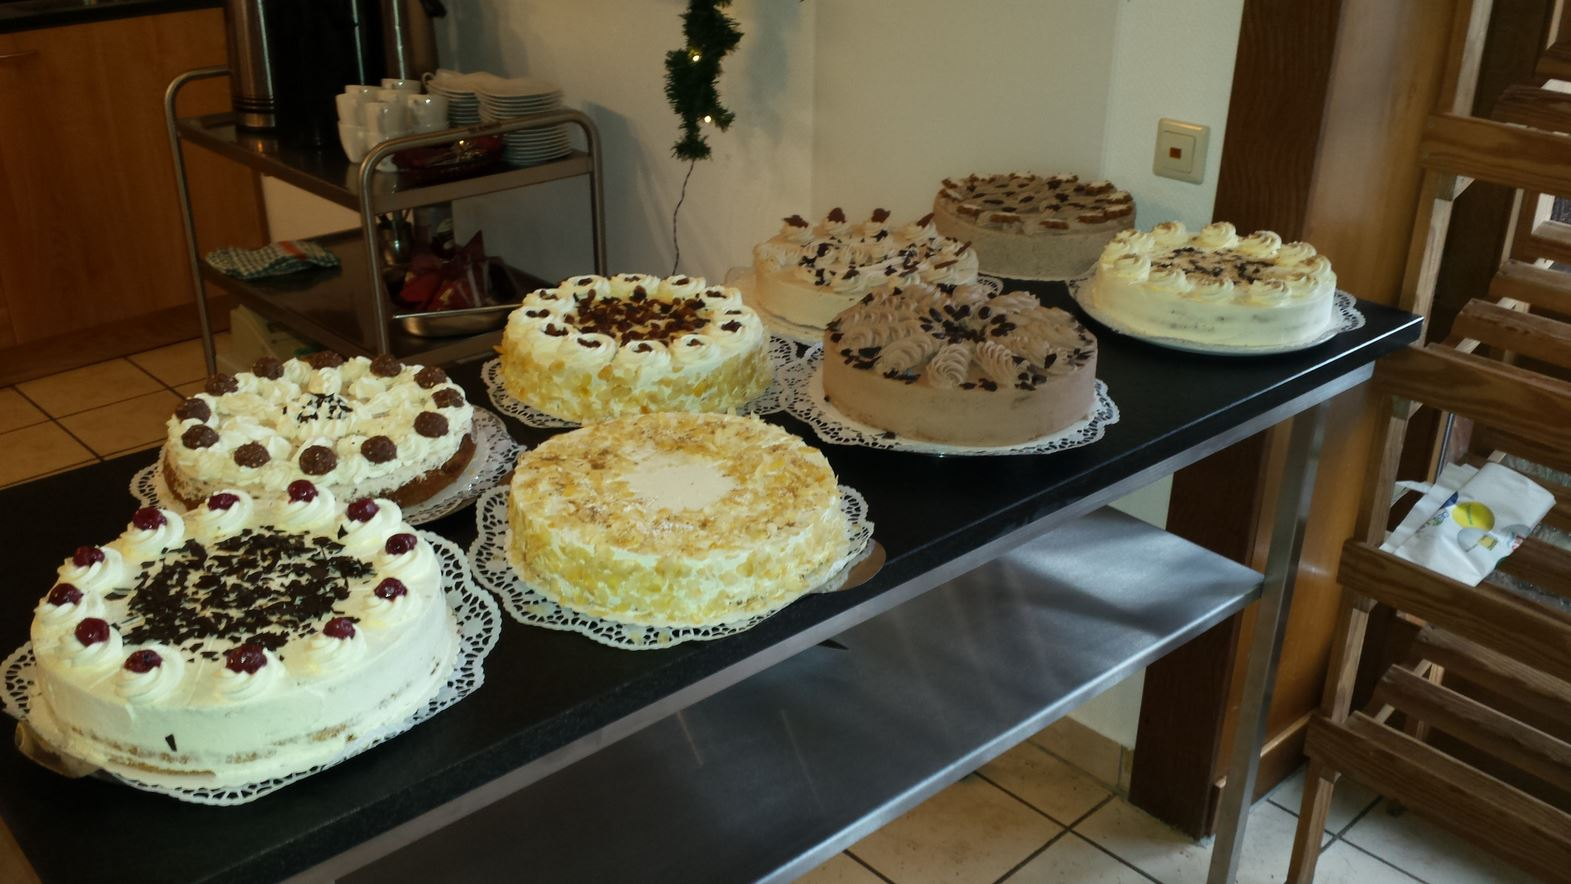 Kuchenbuffet im Hofcafe May